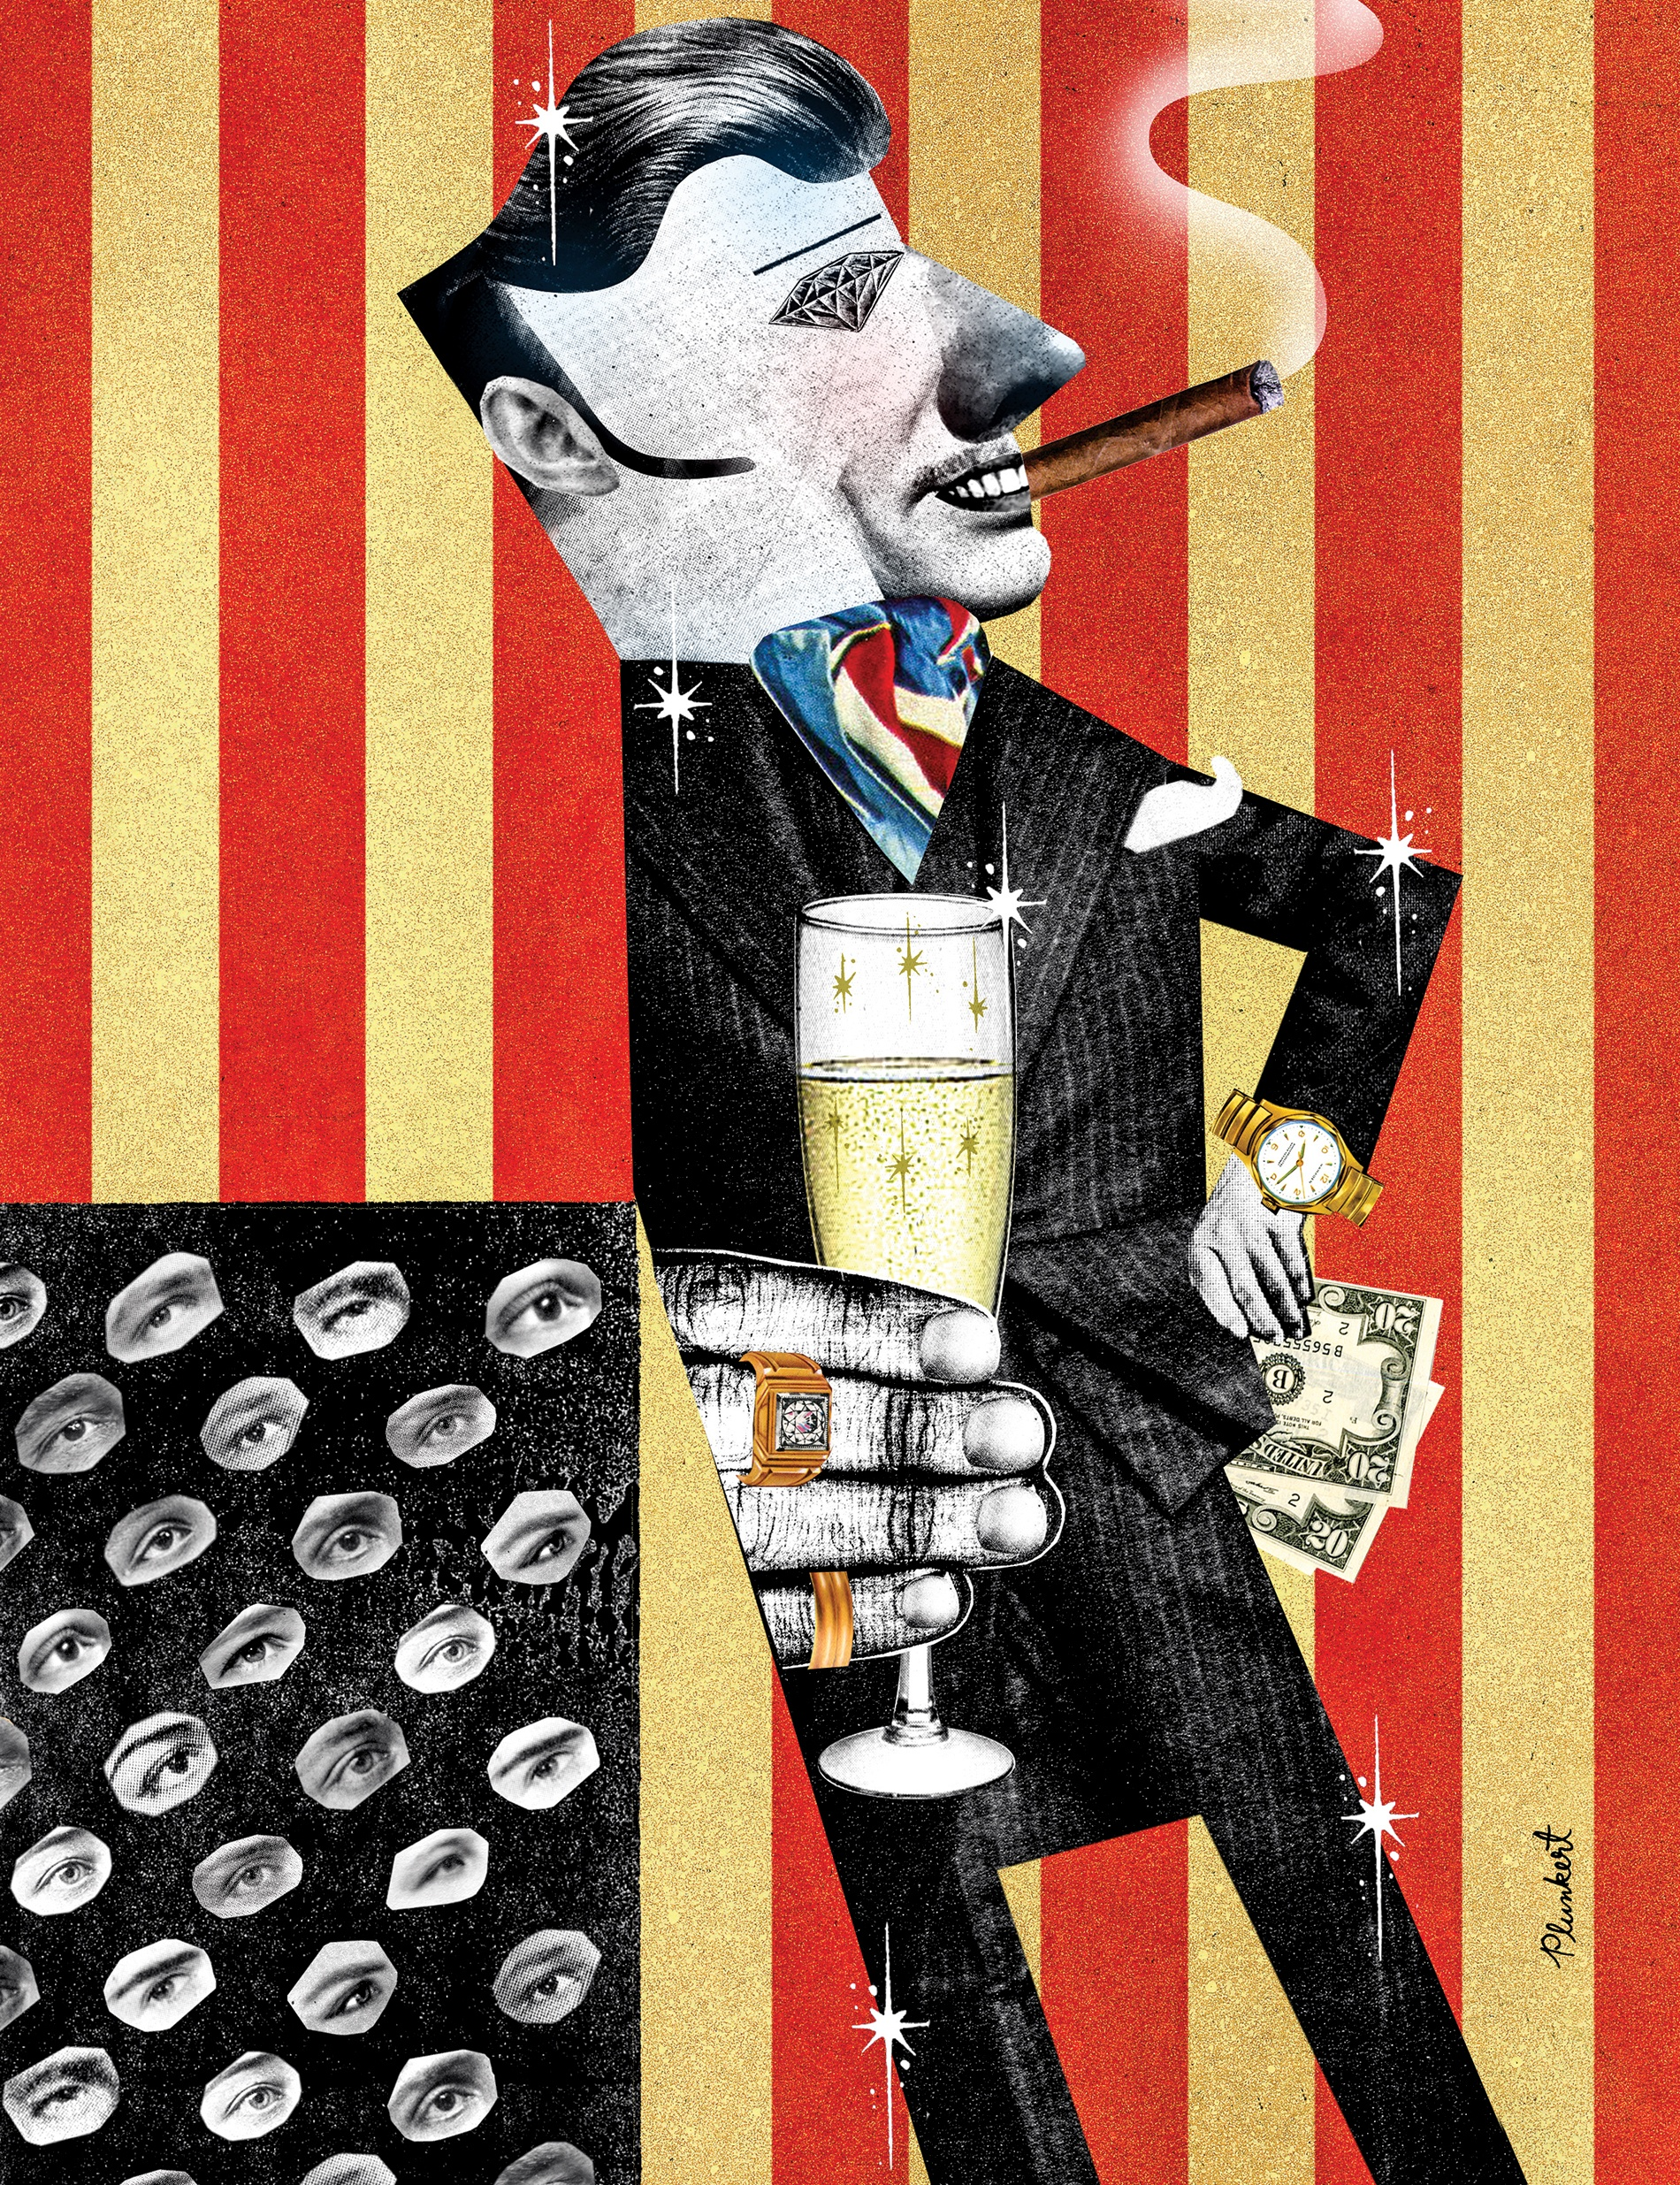 illustration of a louche rich dude, being watched by the 99%